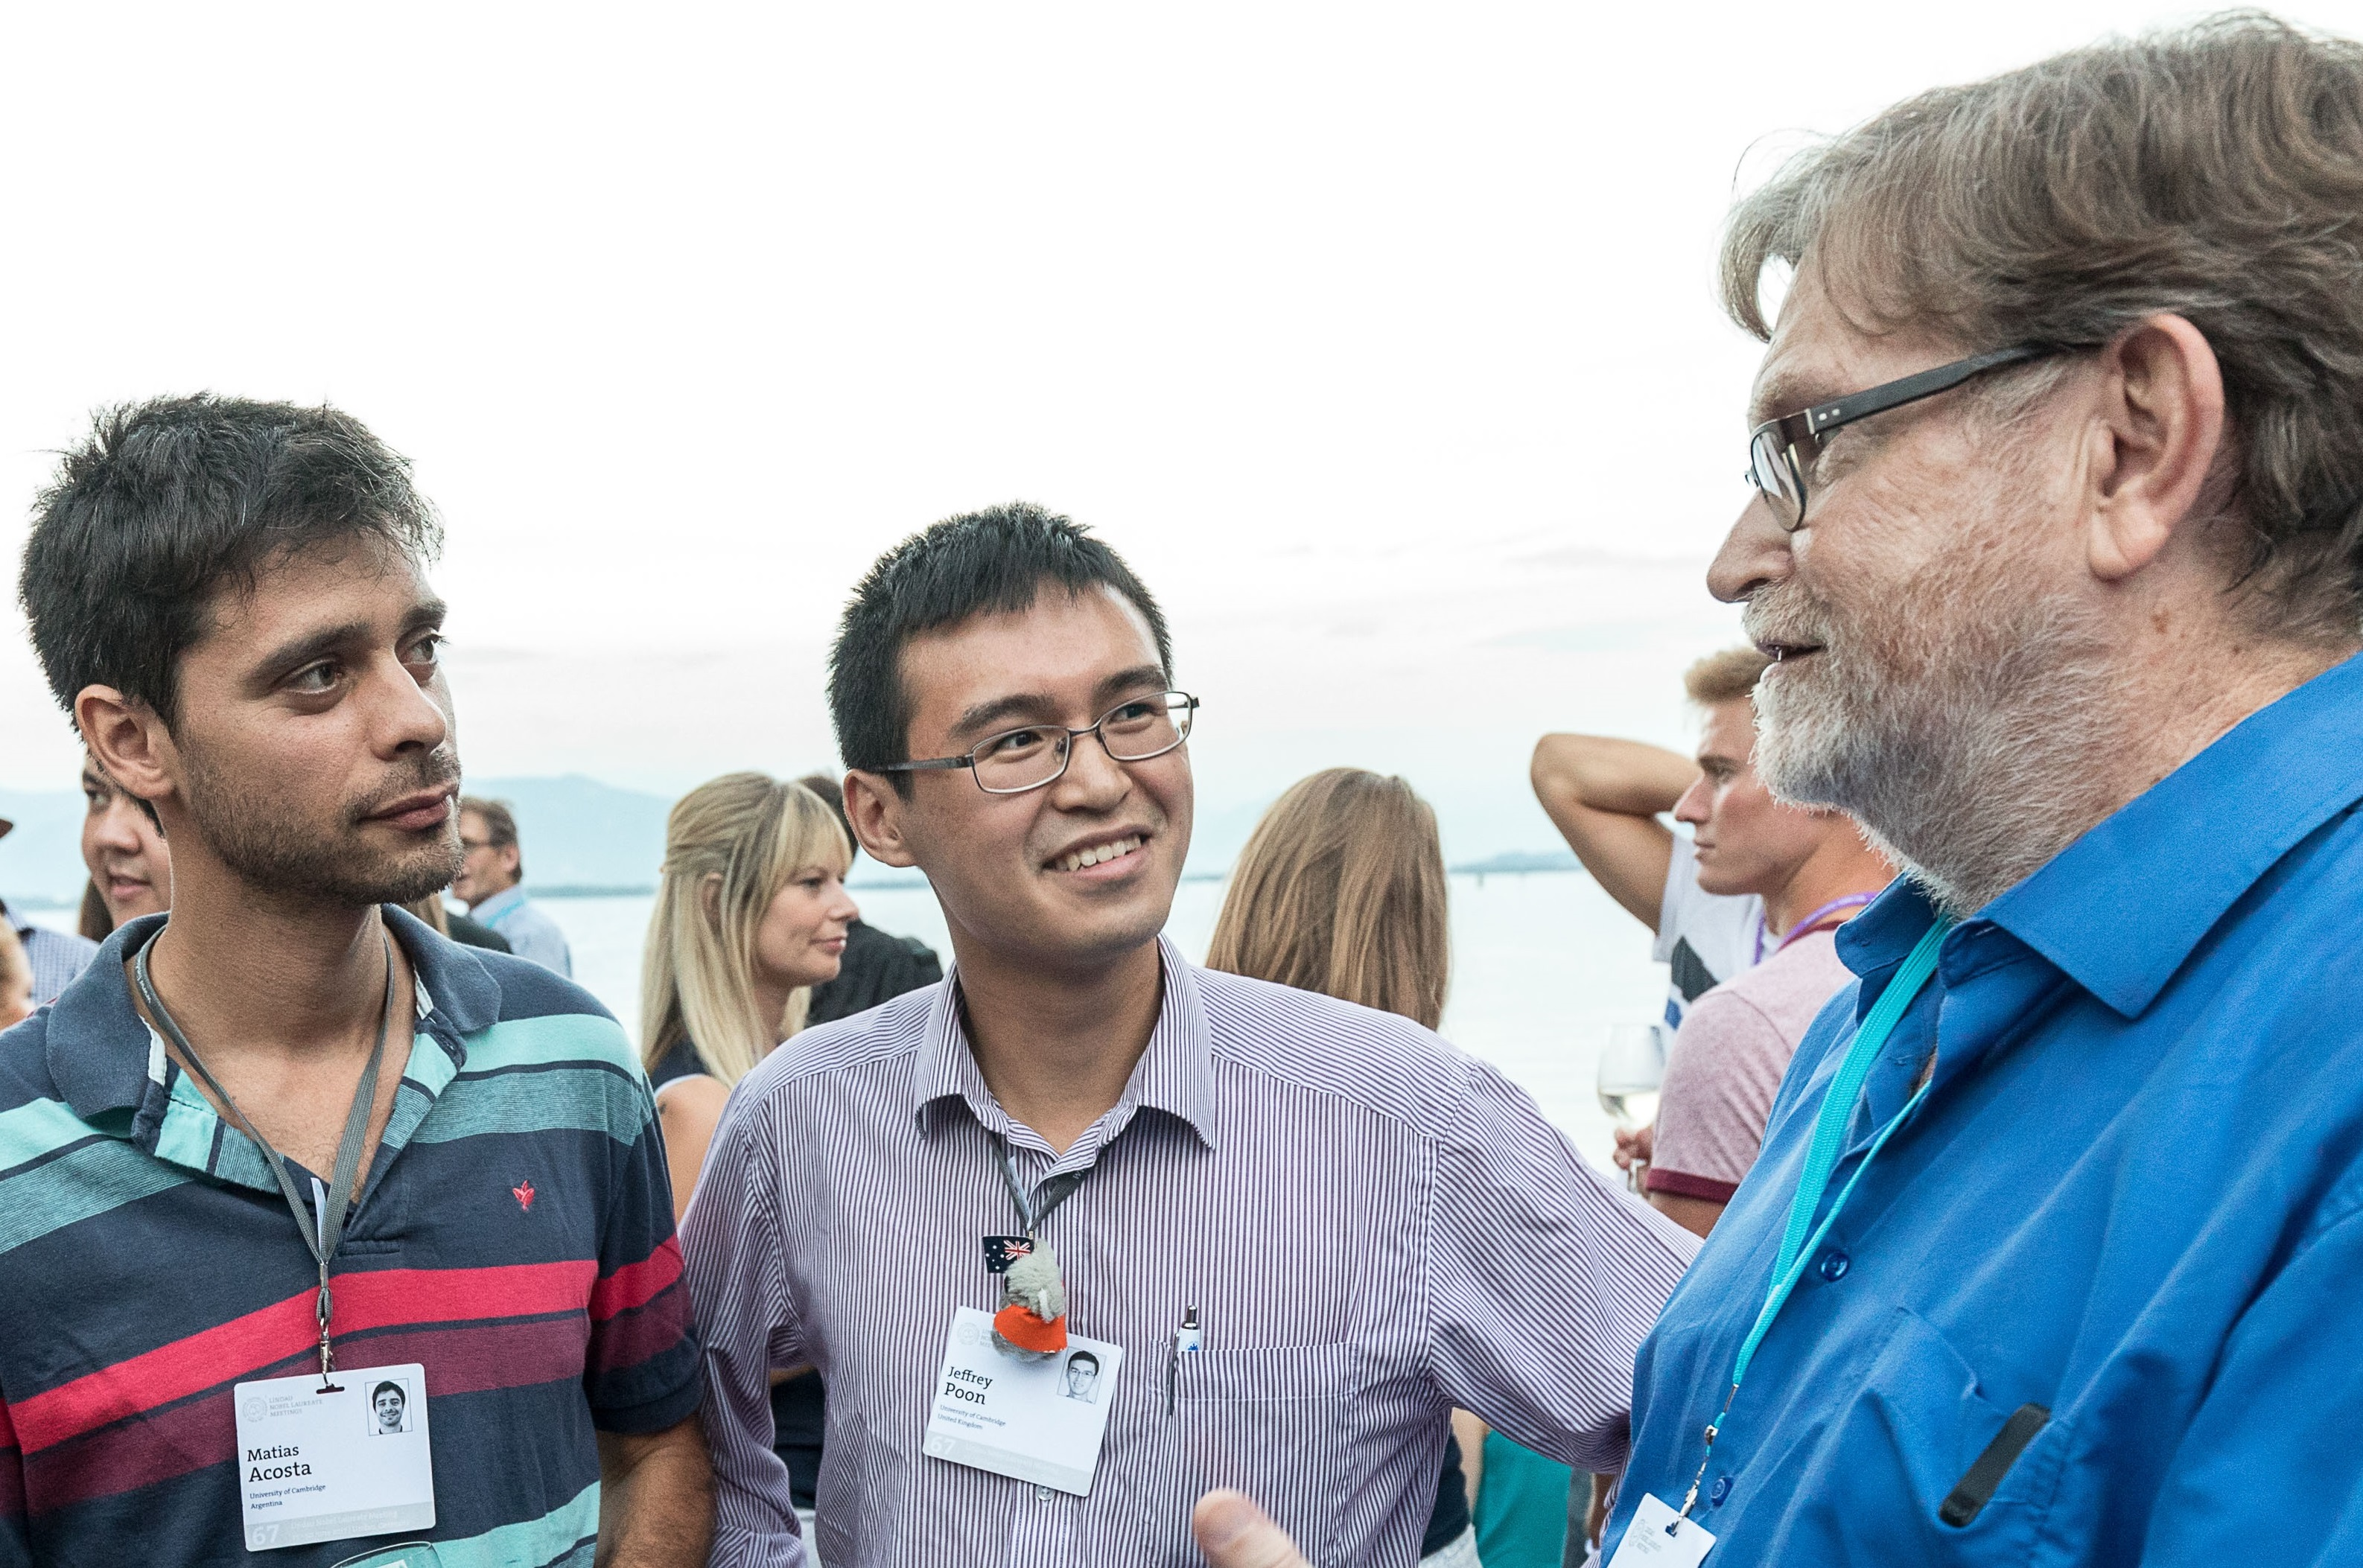 Matías Acosta with other young scientists and Nobel Laureate George Smoot during the 67th Lindau Meeting. Picture/Credit: Christian Flemming/Lindau Nobel Laureate Meetings